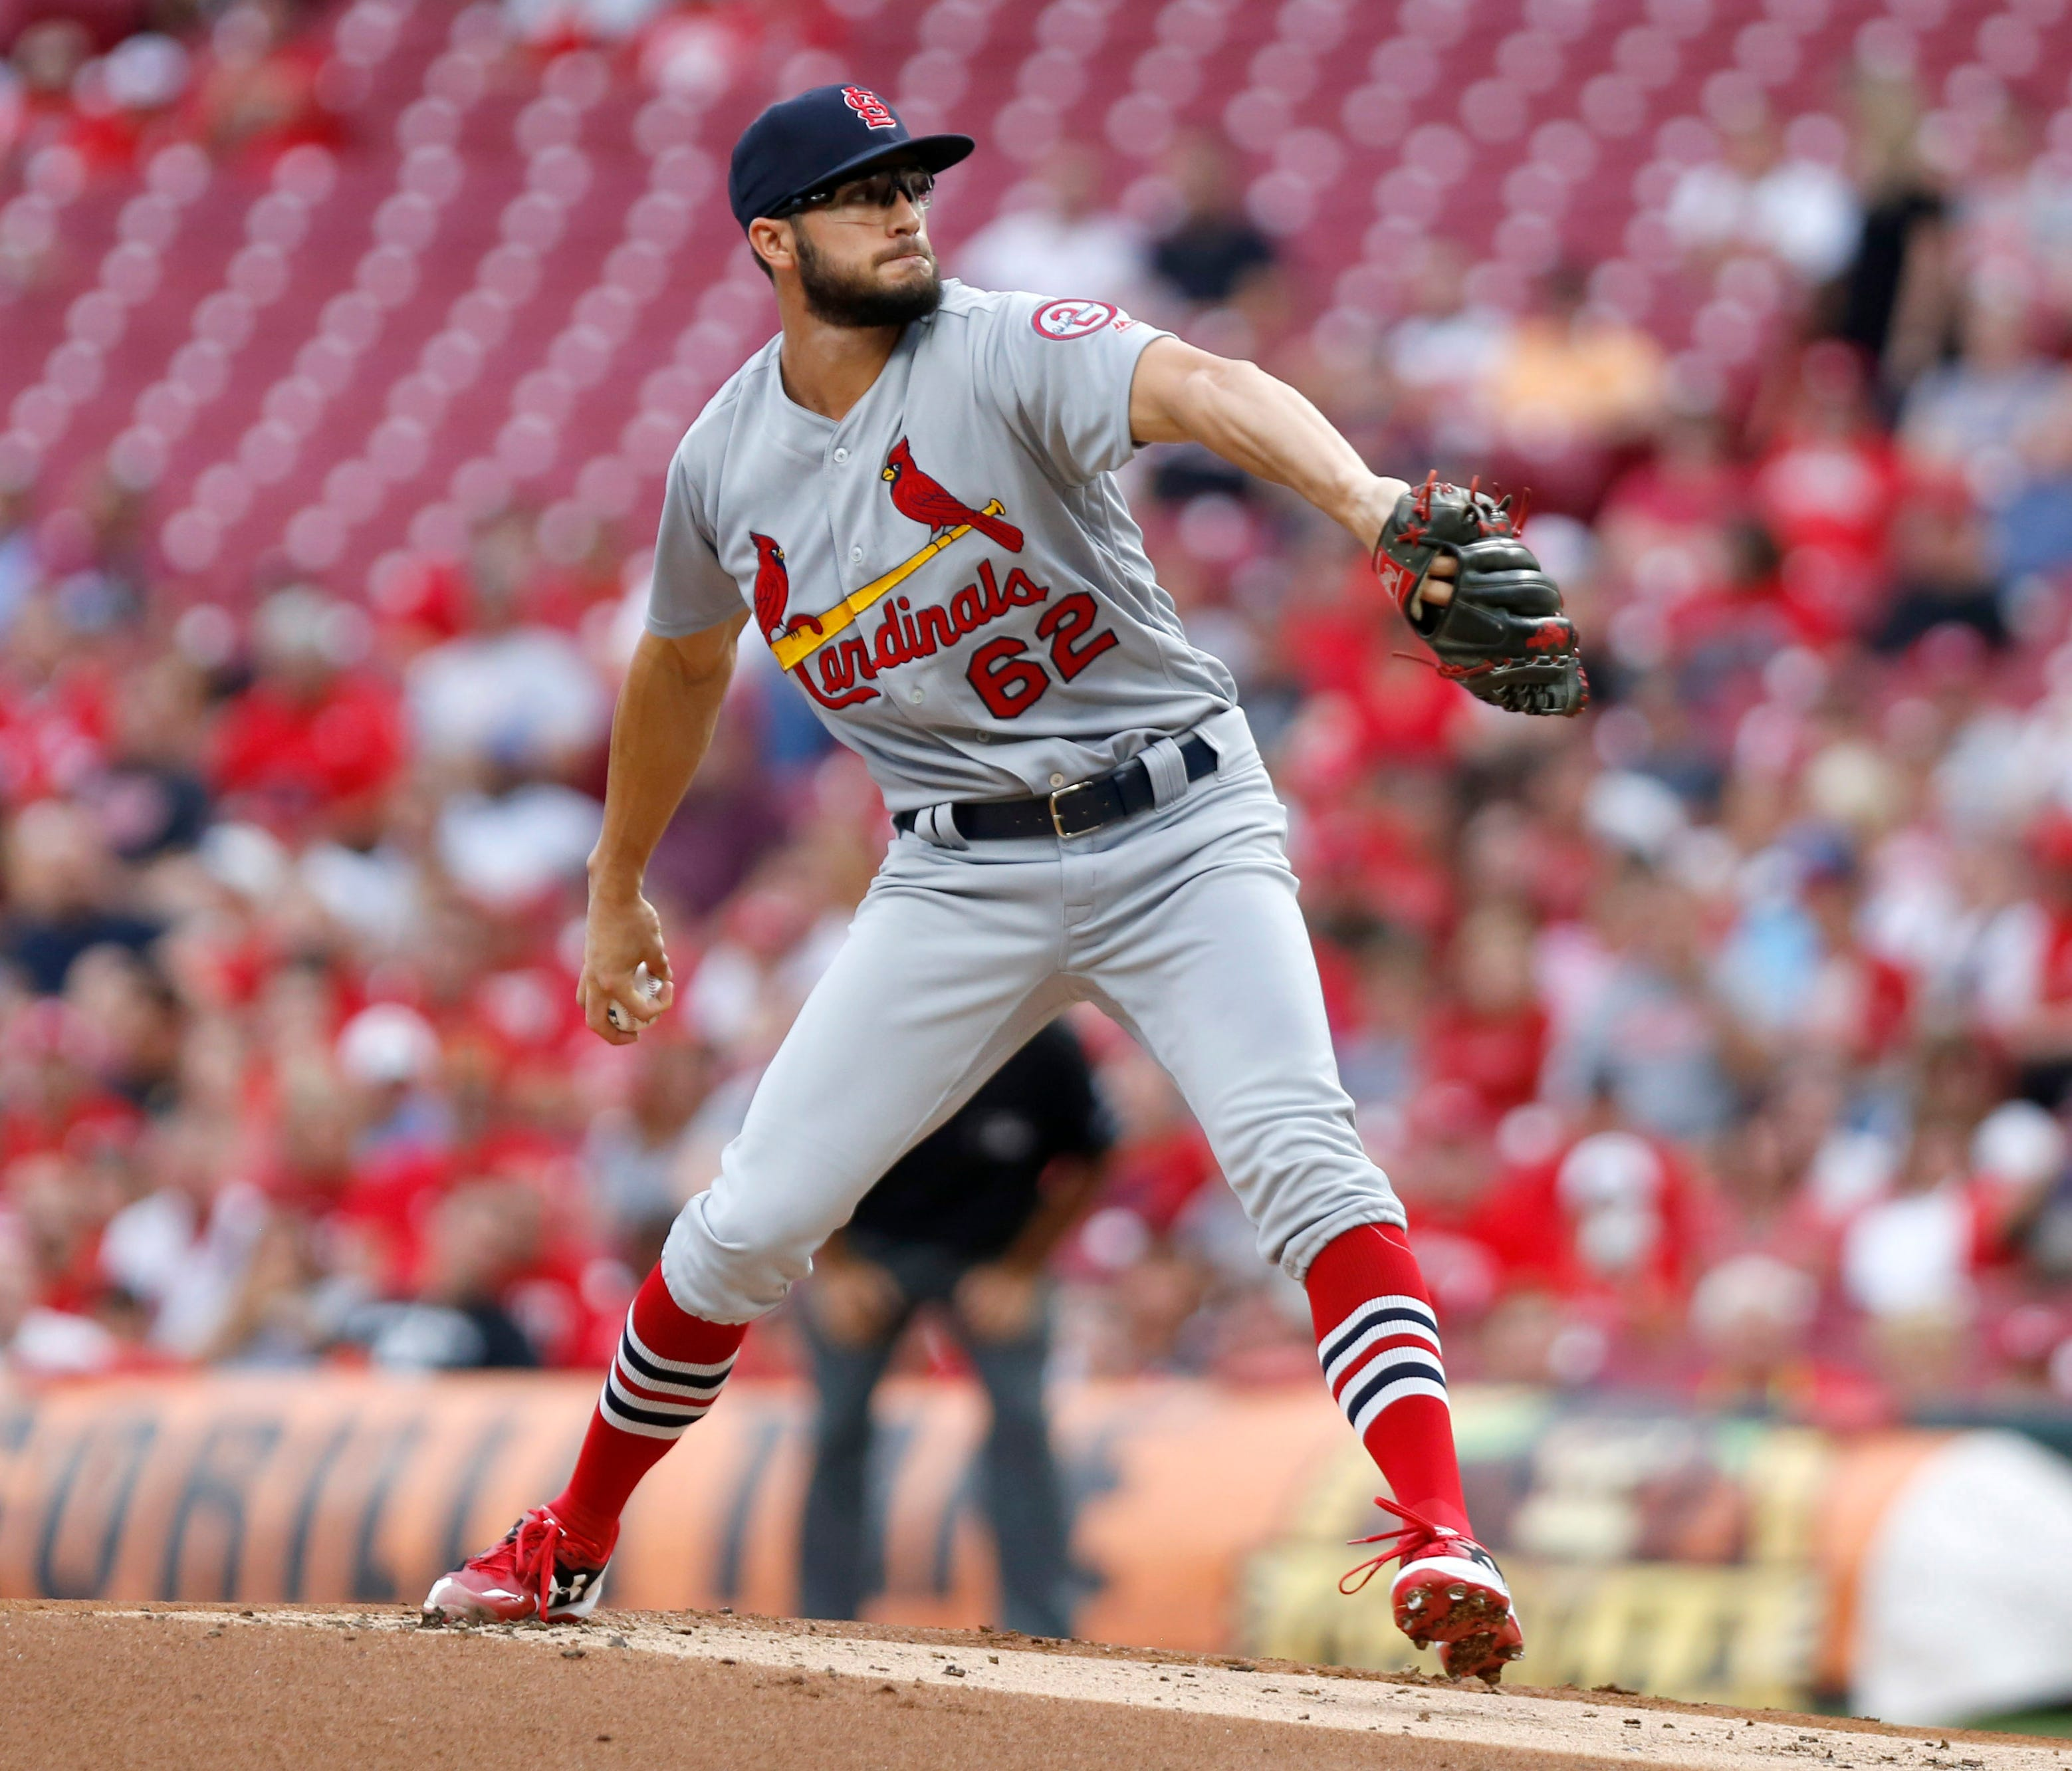 Cardinals pitcher Daniel Poncedeleon held the Reds hitless through seven innings Monday in his first major league appearance.